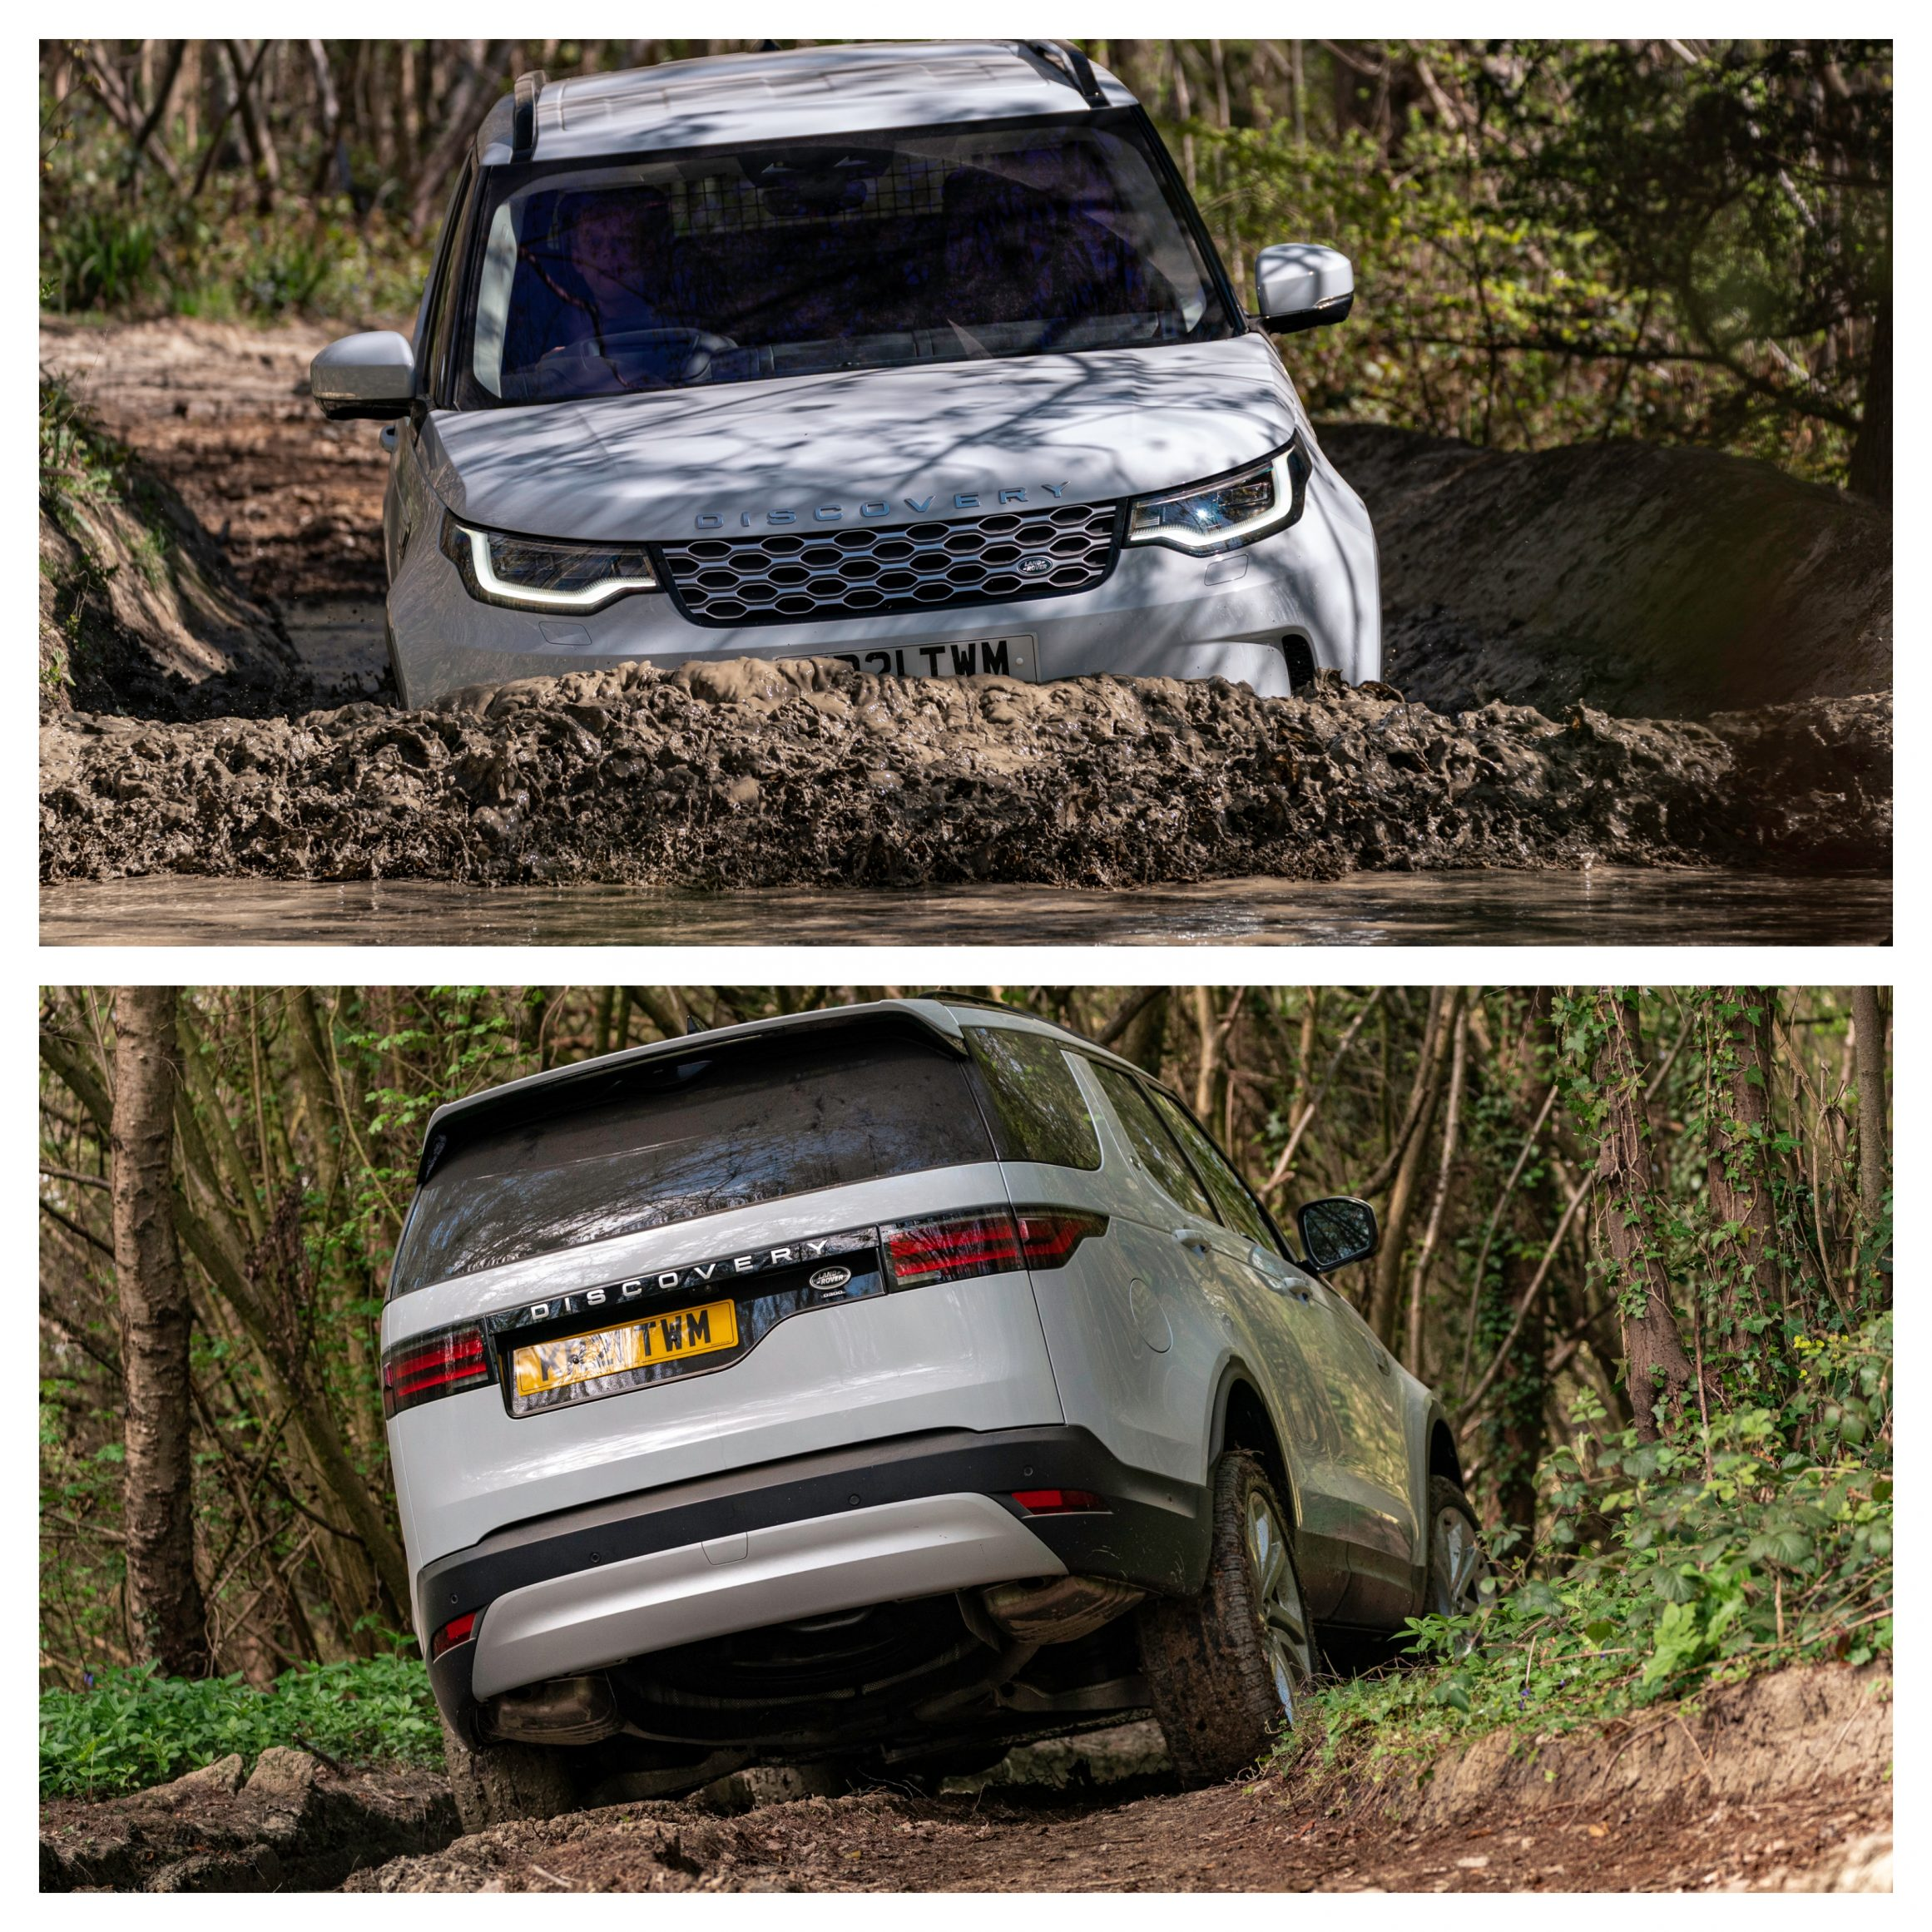 Land Rover Discovery wading through mud